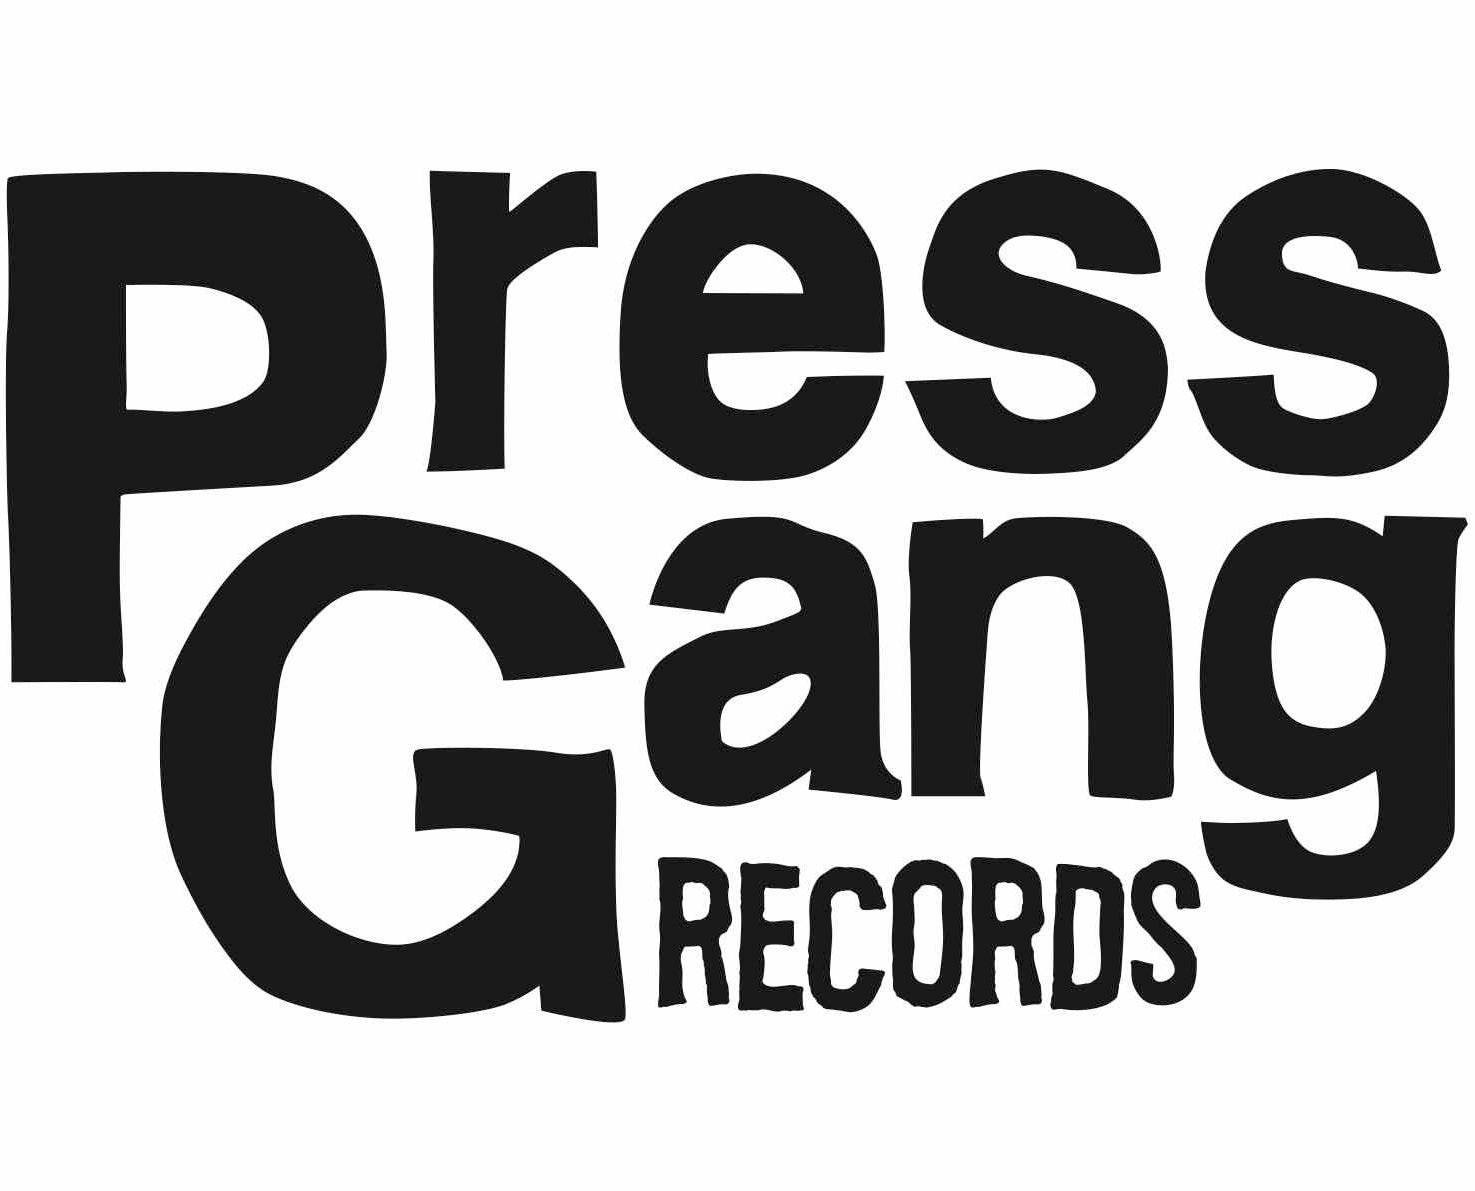 Pressgangrecords